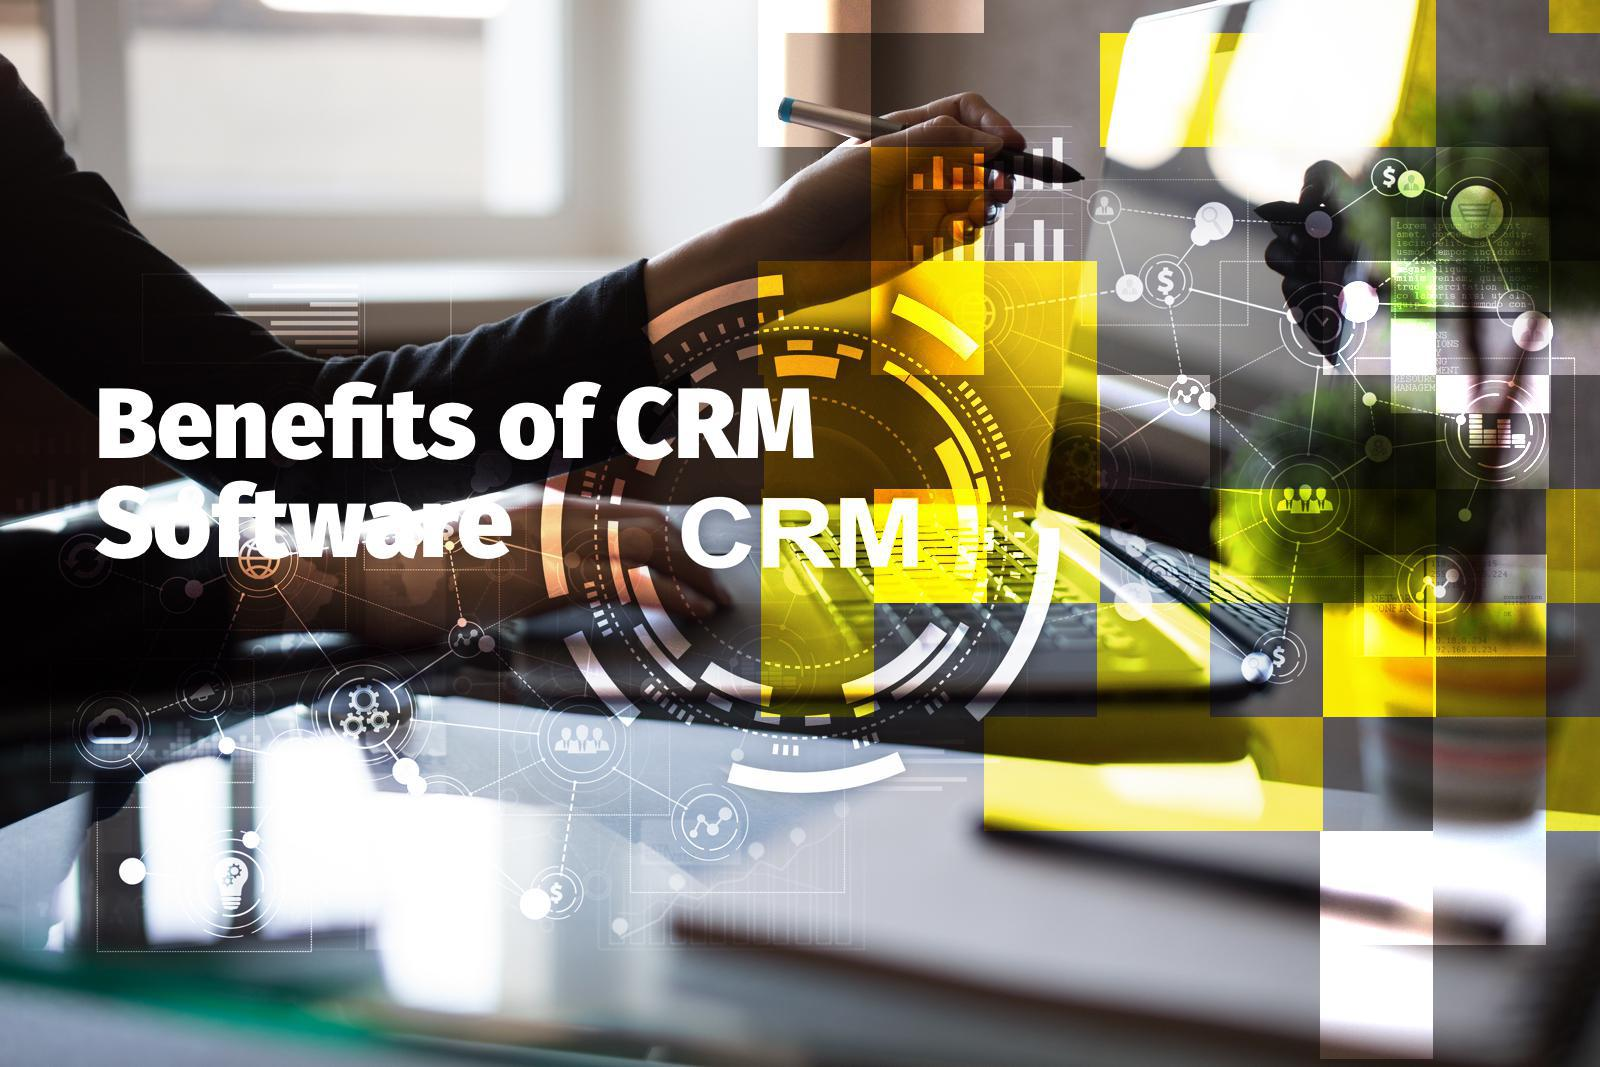 Benefits of CRM Software